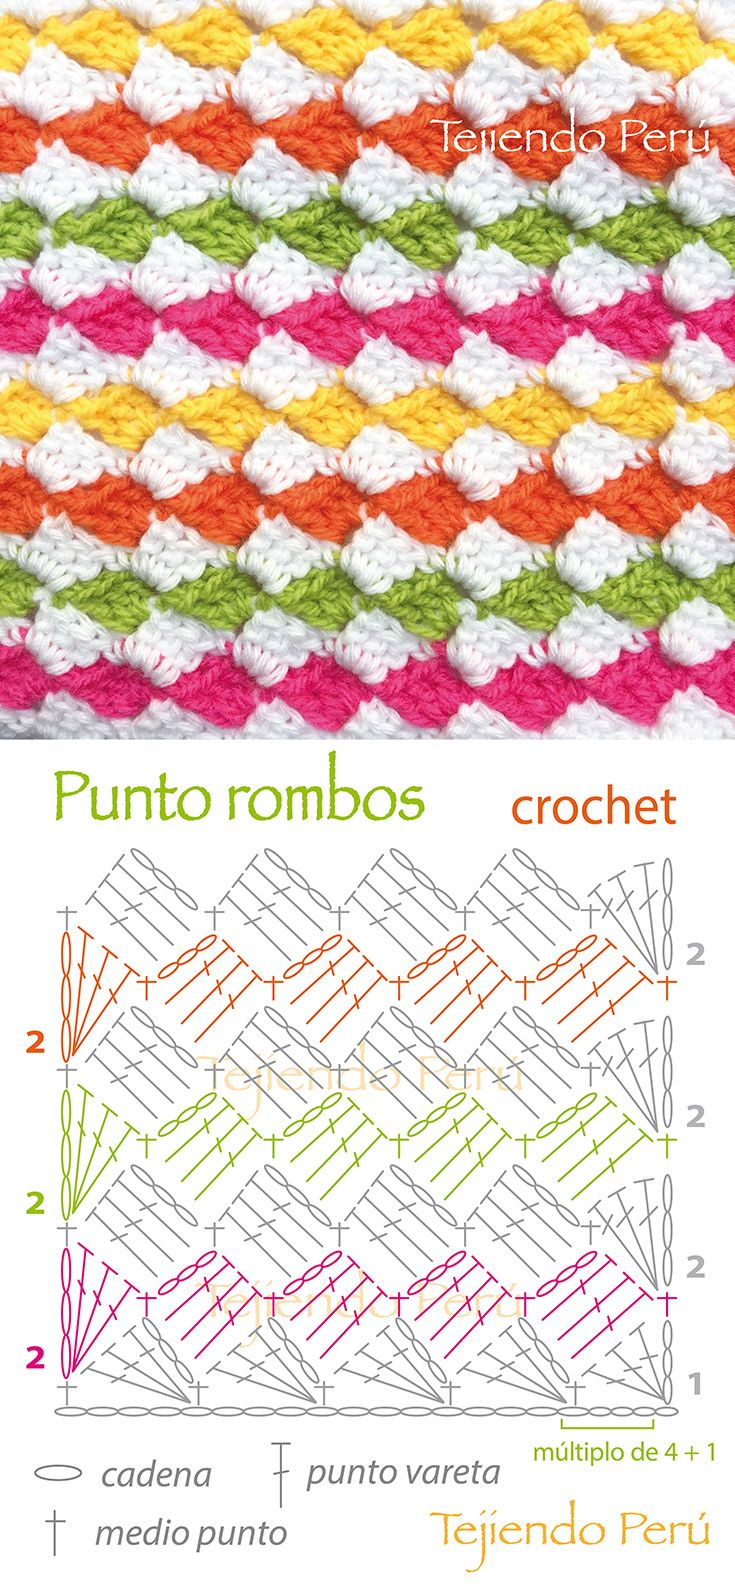 Find This Pin And More On Puntos Fantas�a En Crochet  Crochet Stitches